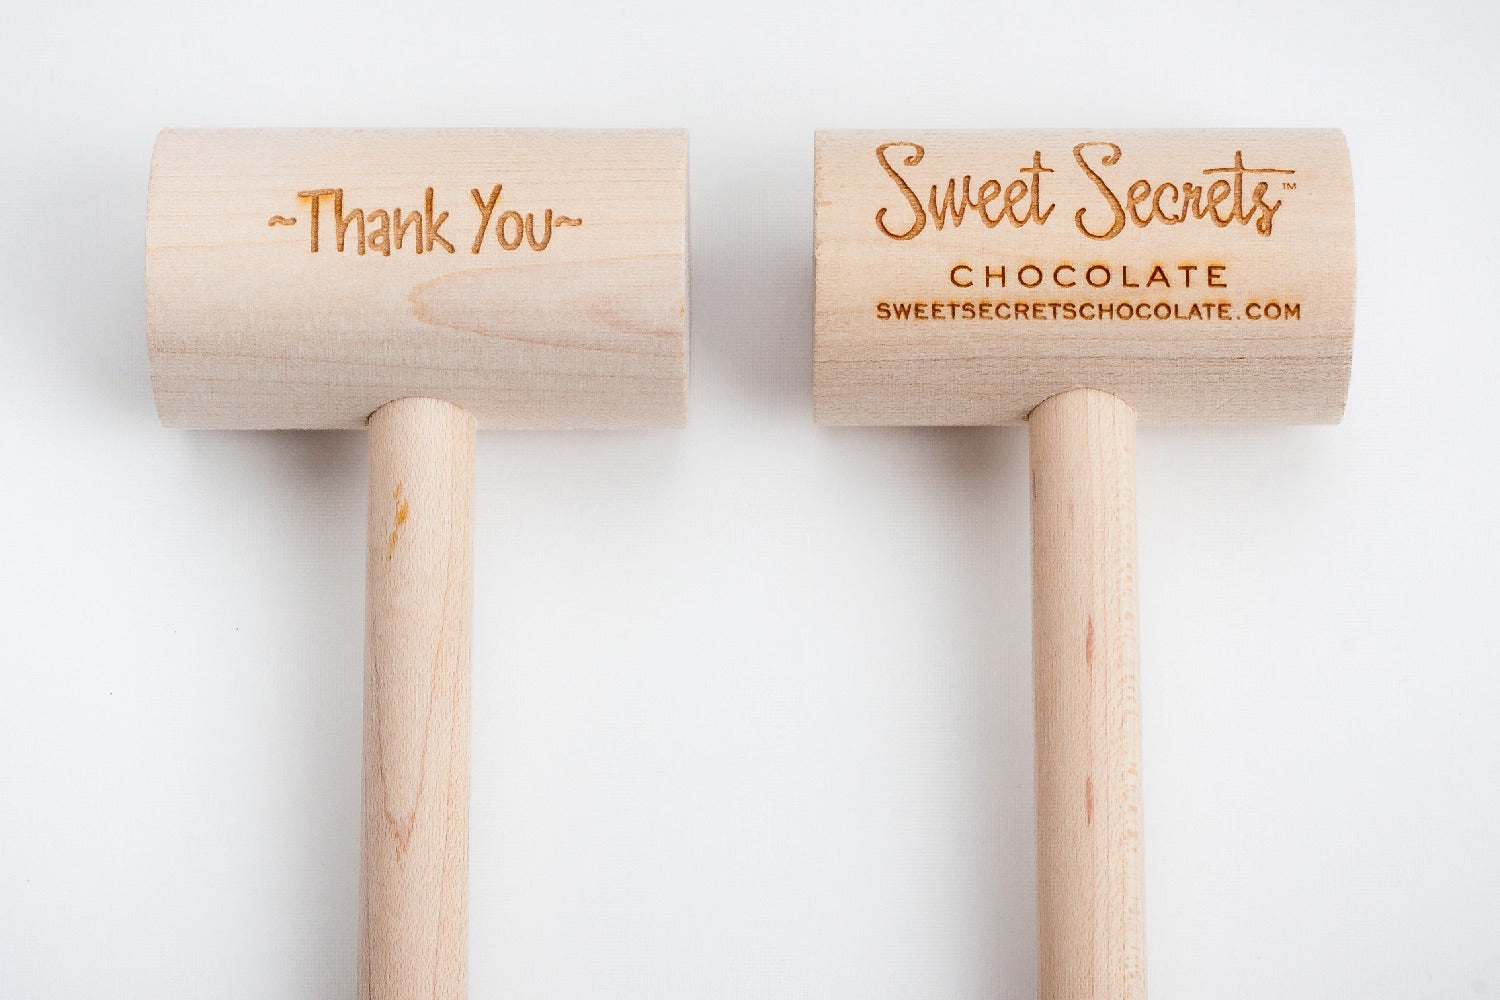 Thank You Smash Mallet-Sweet Secrets Chocolate